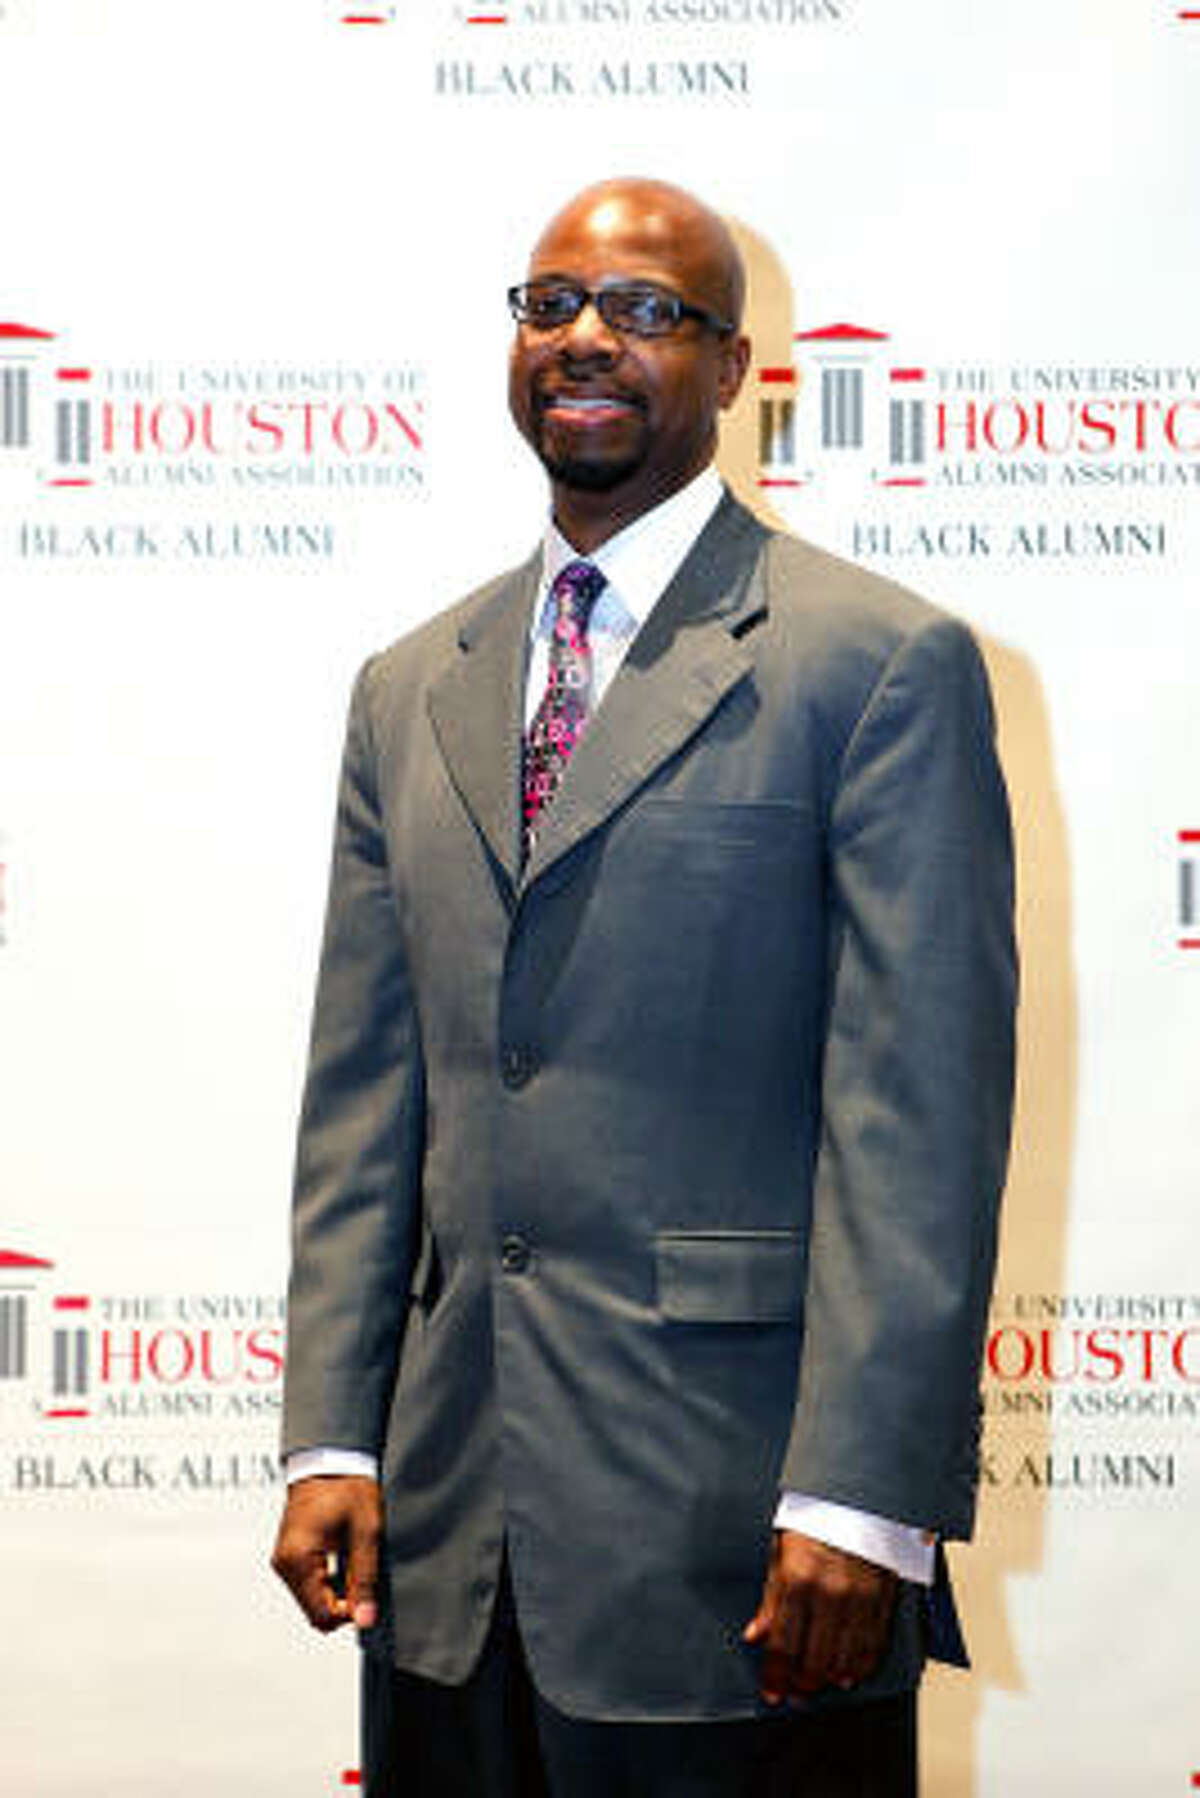 Distinguished Alumni Honoree Dr. Frazier Wilson